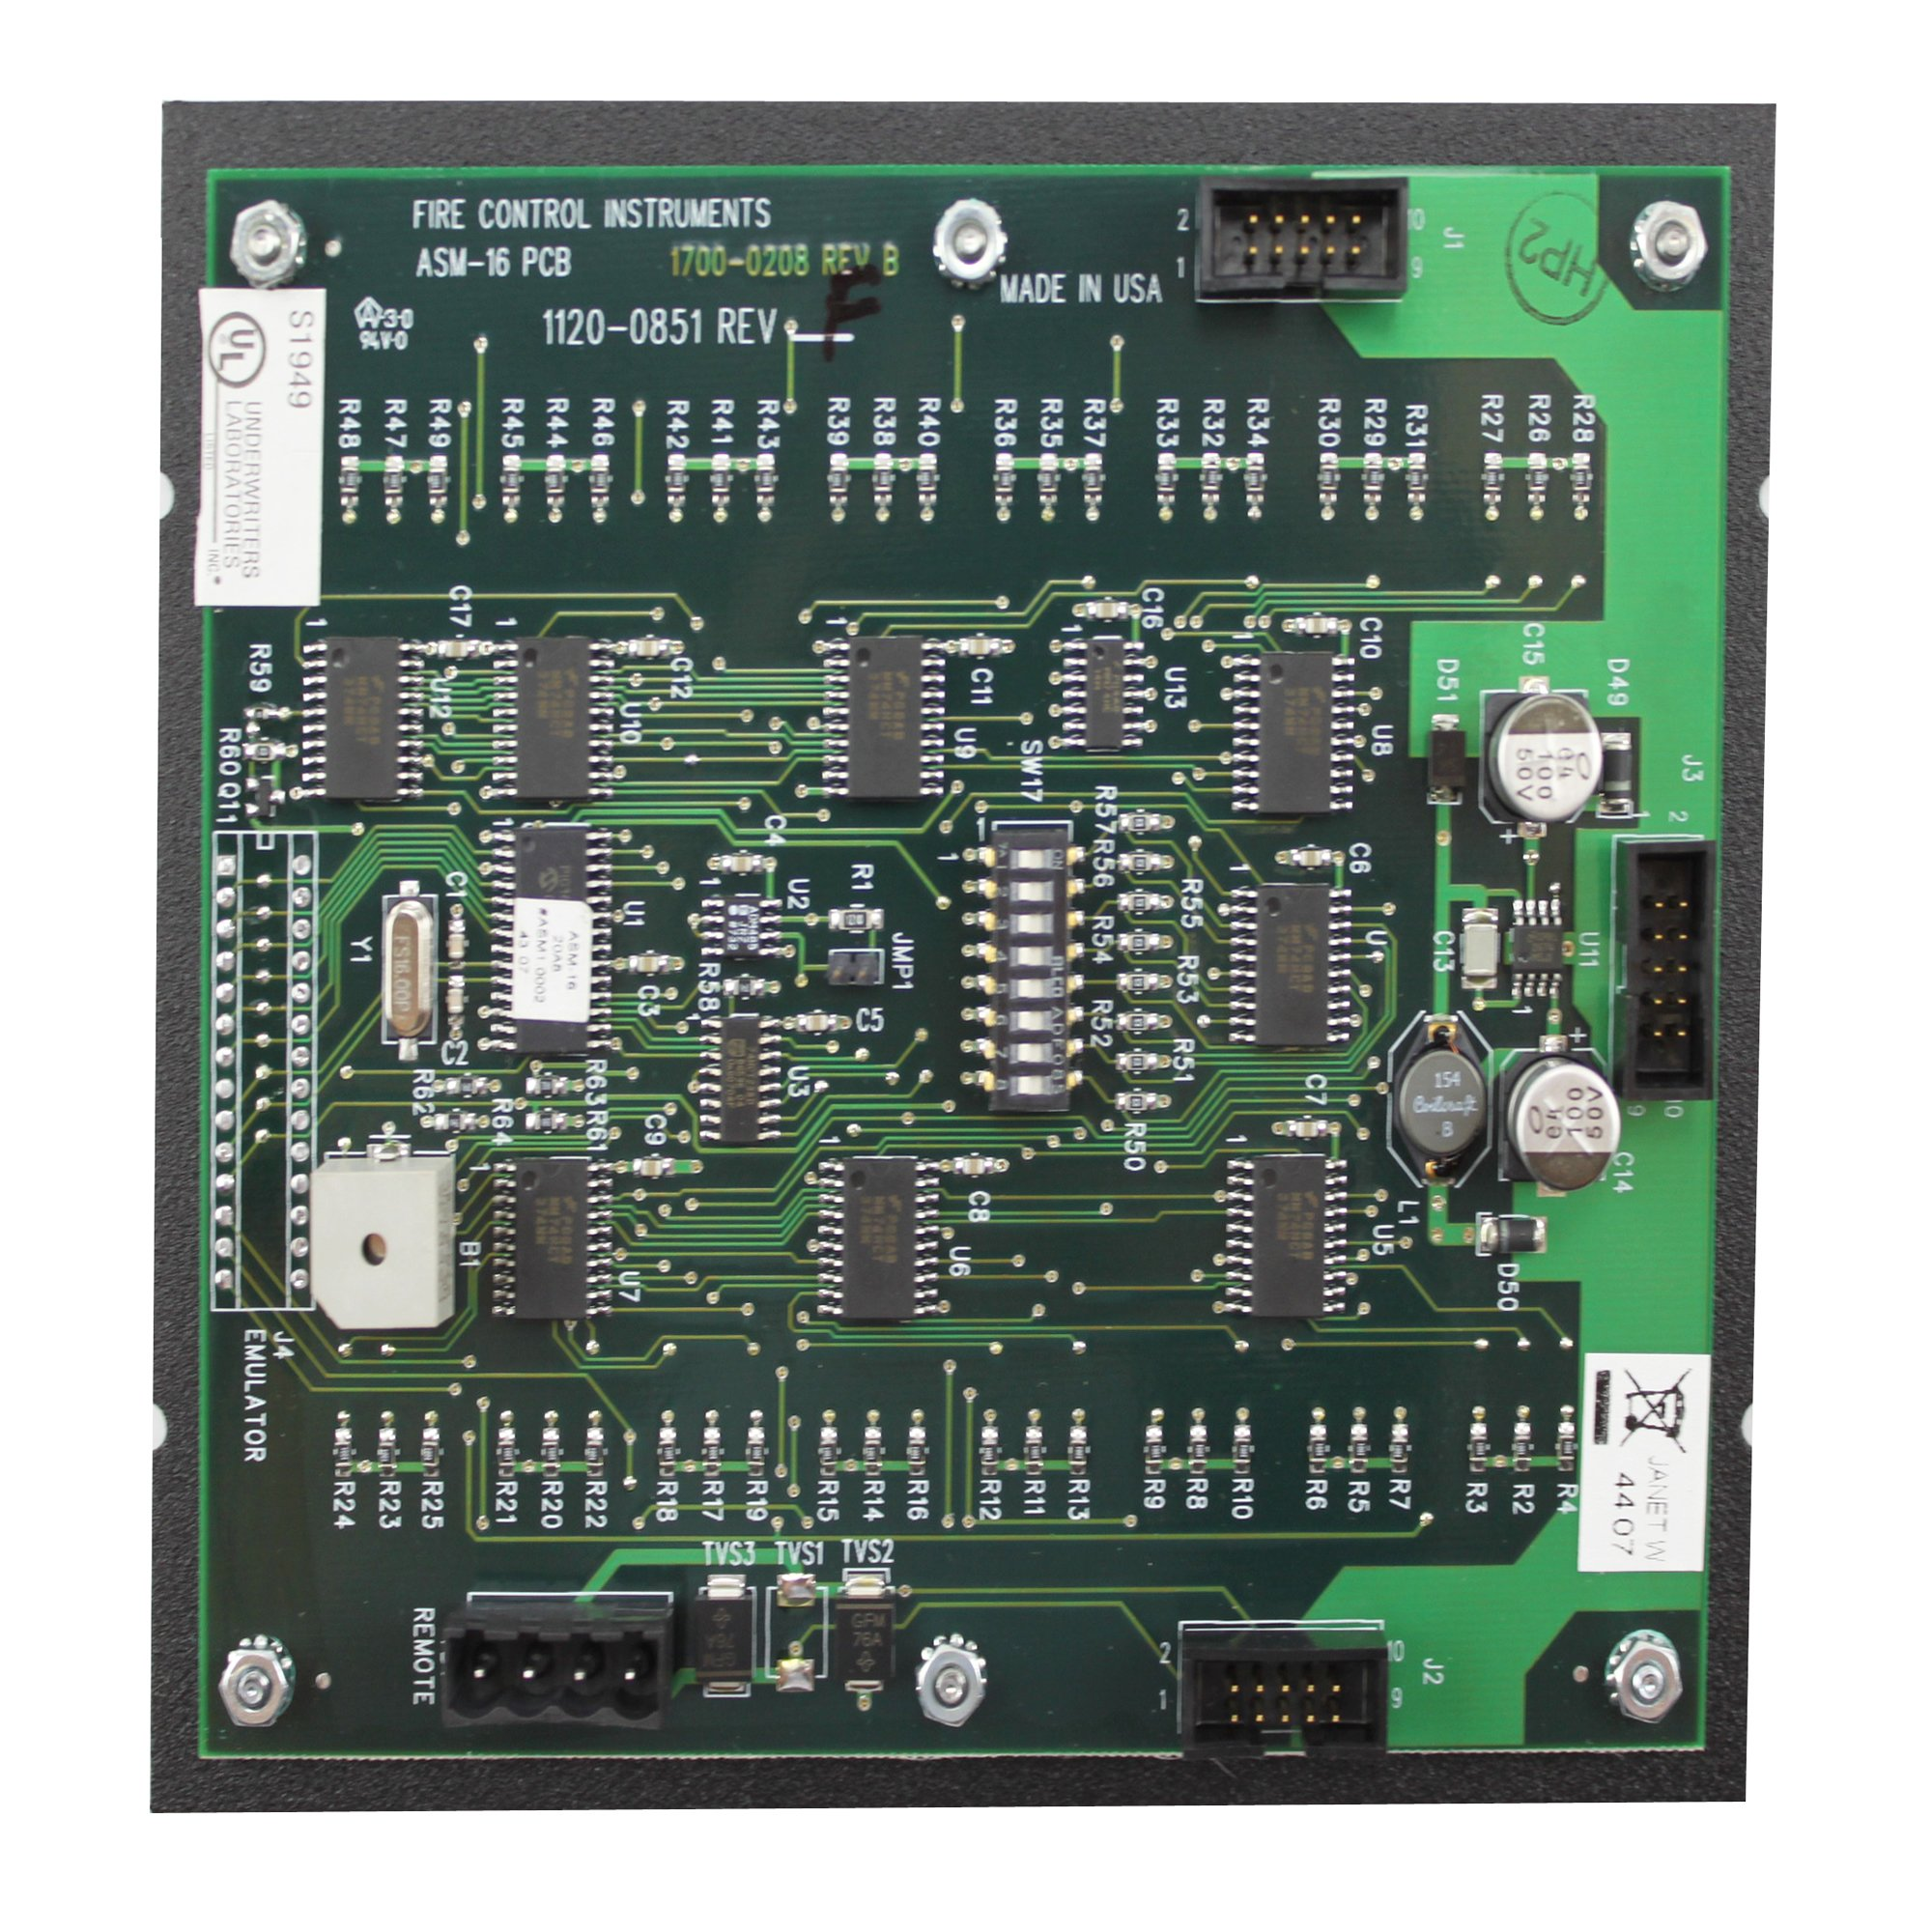 FCI 1100-0455 ASM-16 Addressable Programmable Switch Module